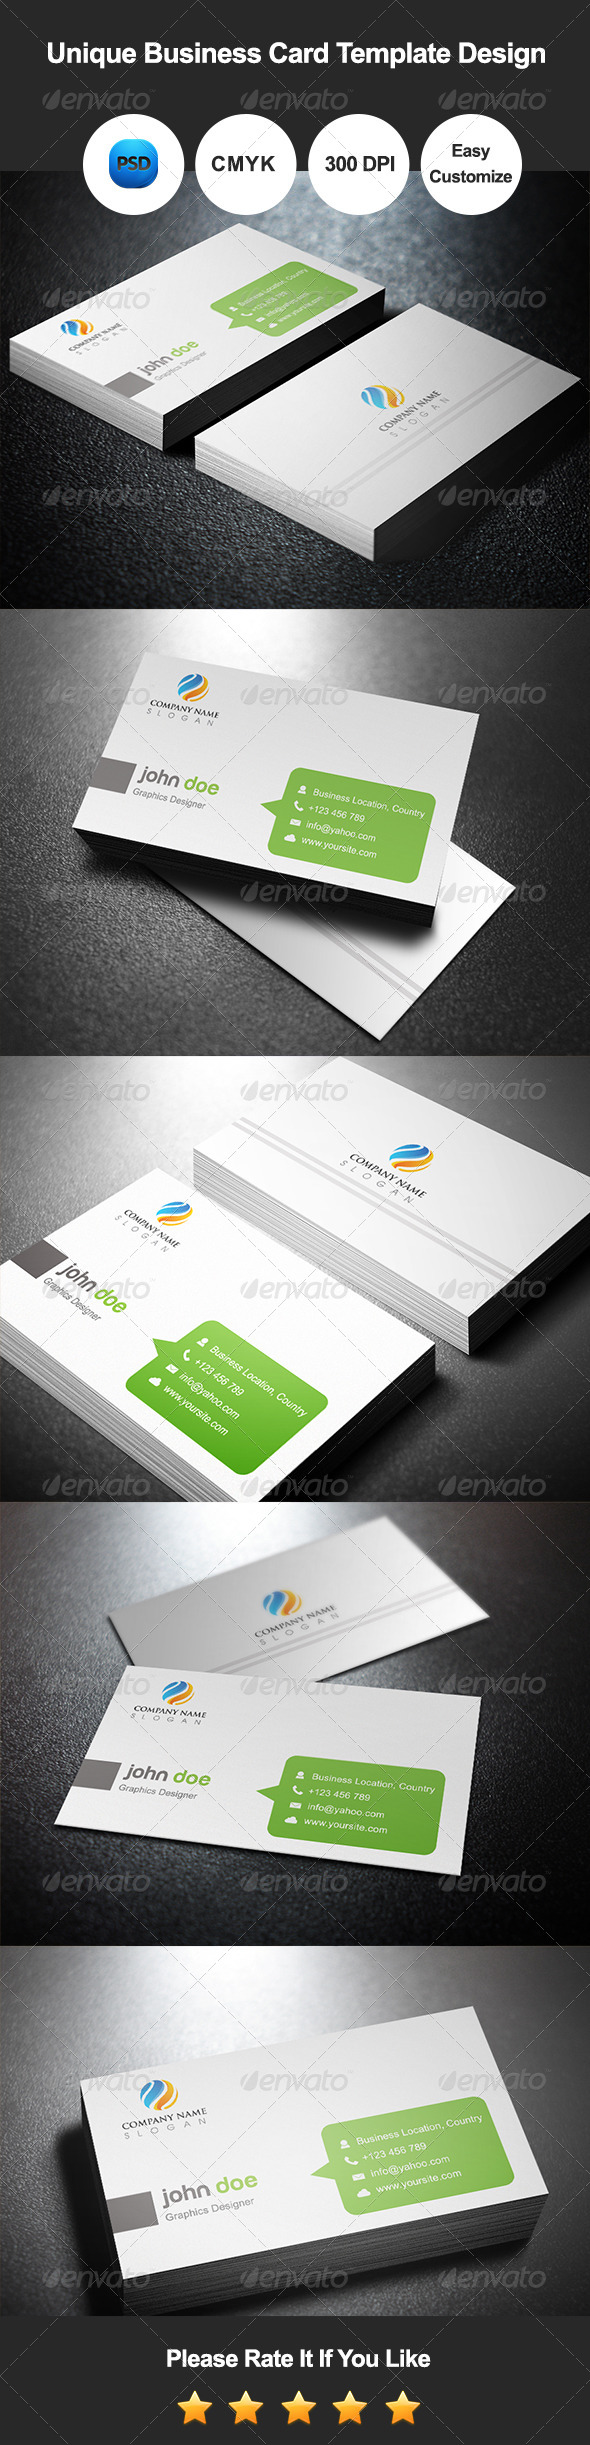 Unique Business Card Template Design - Corporate Business Cards